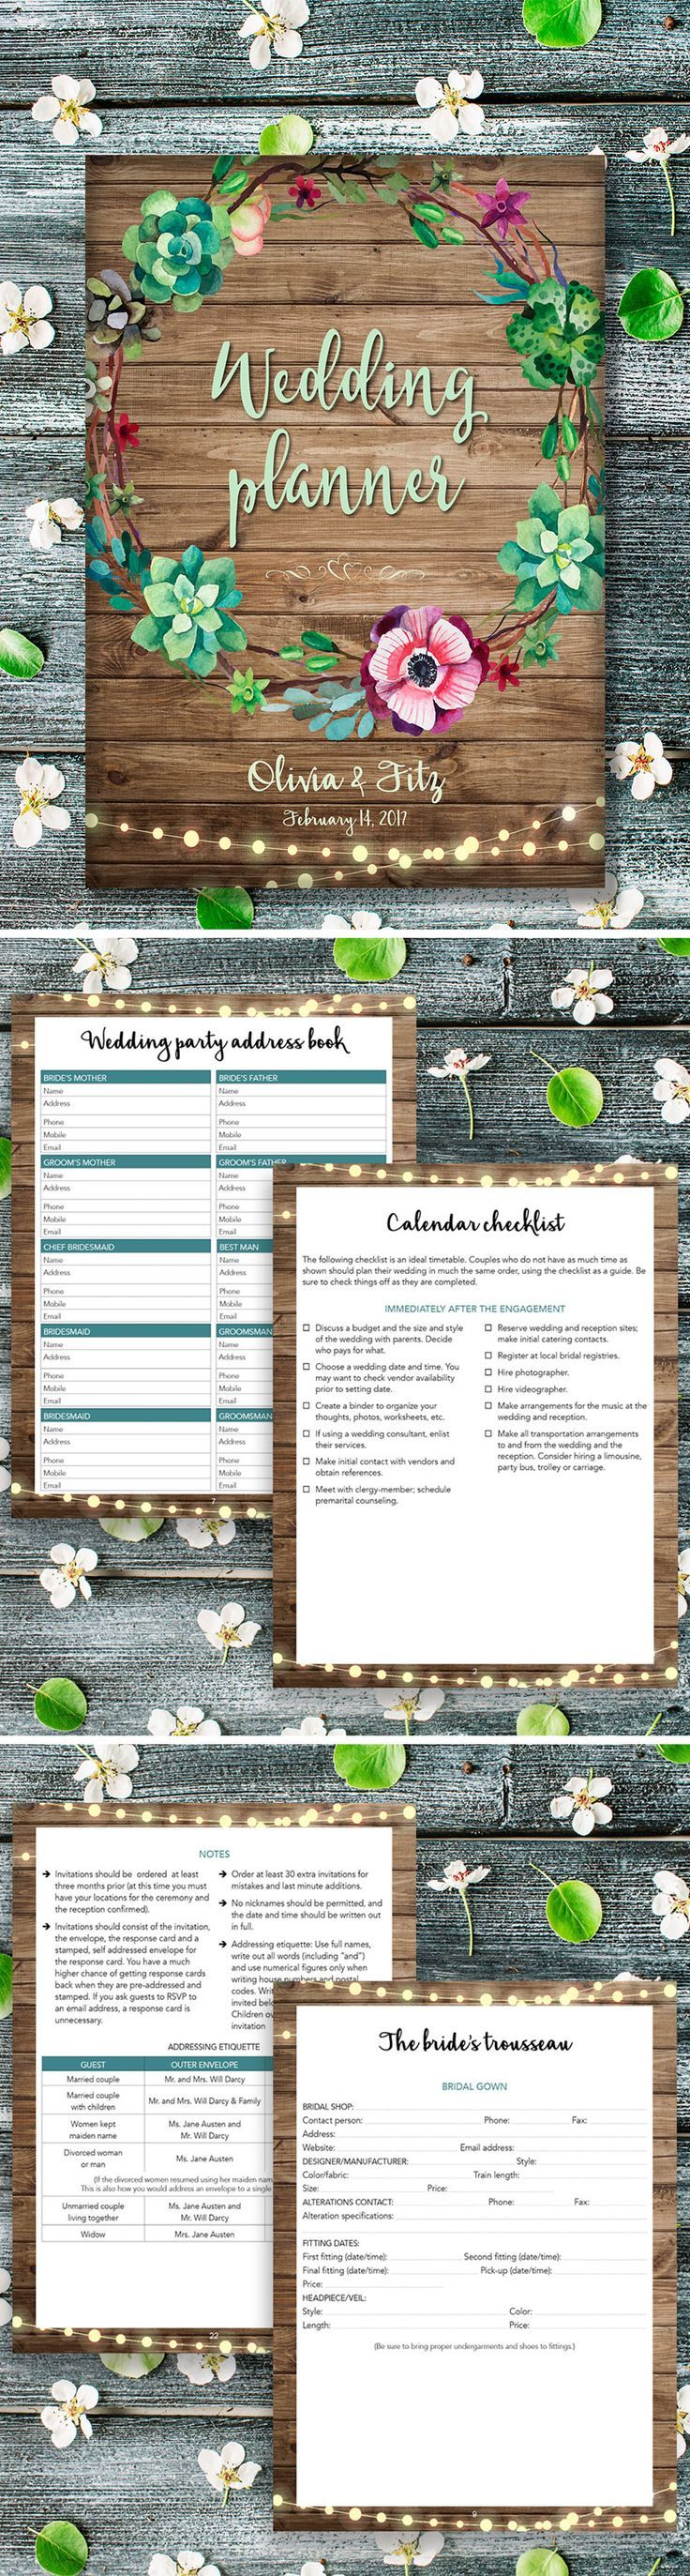 printable bridal registry list%0A Printable wedding planner